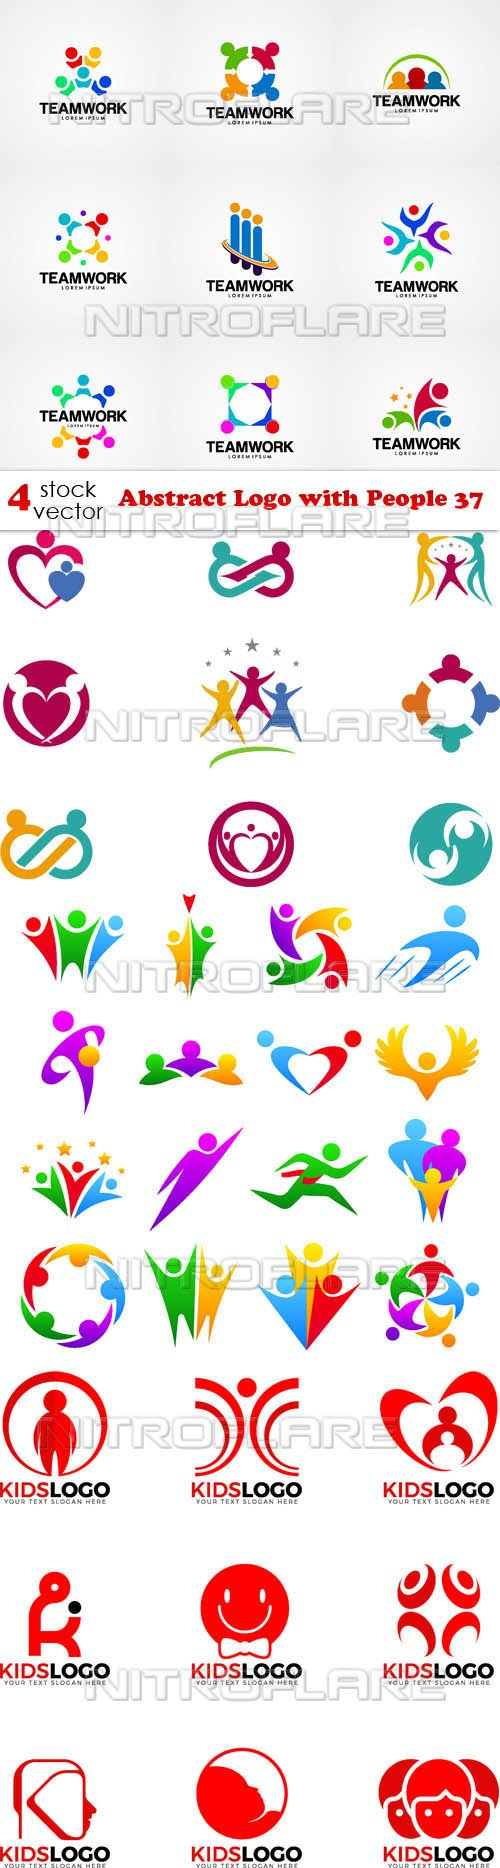 Vectors - Abstract Logo with People 37